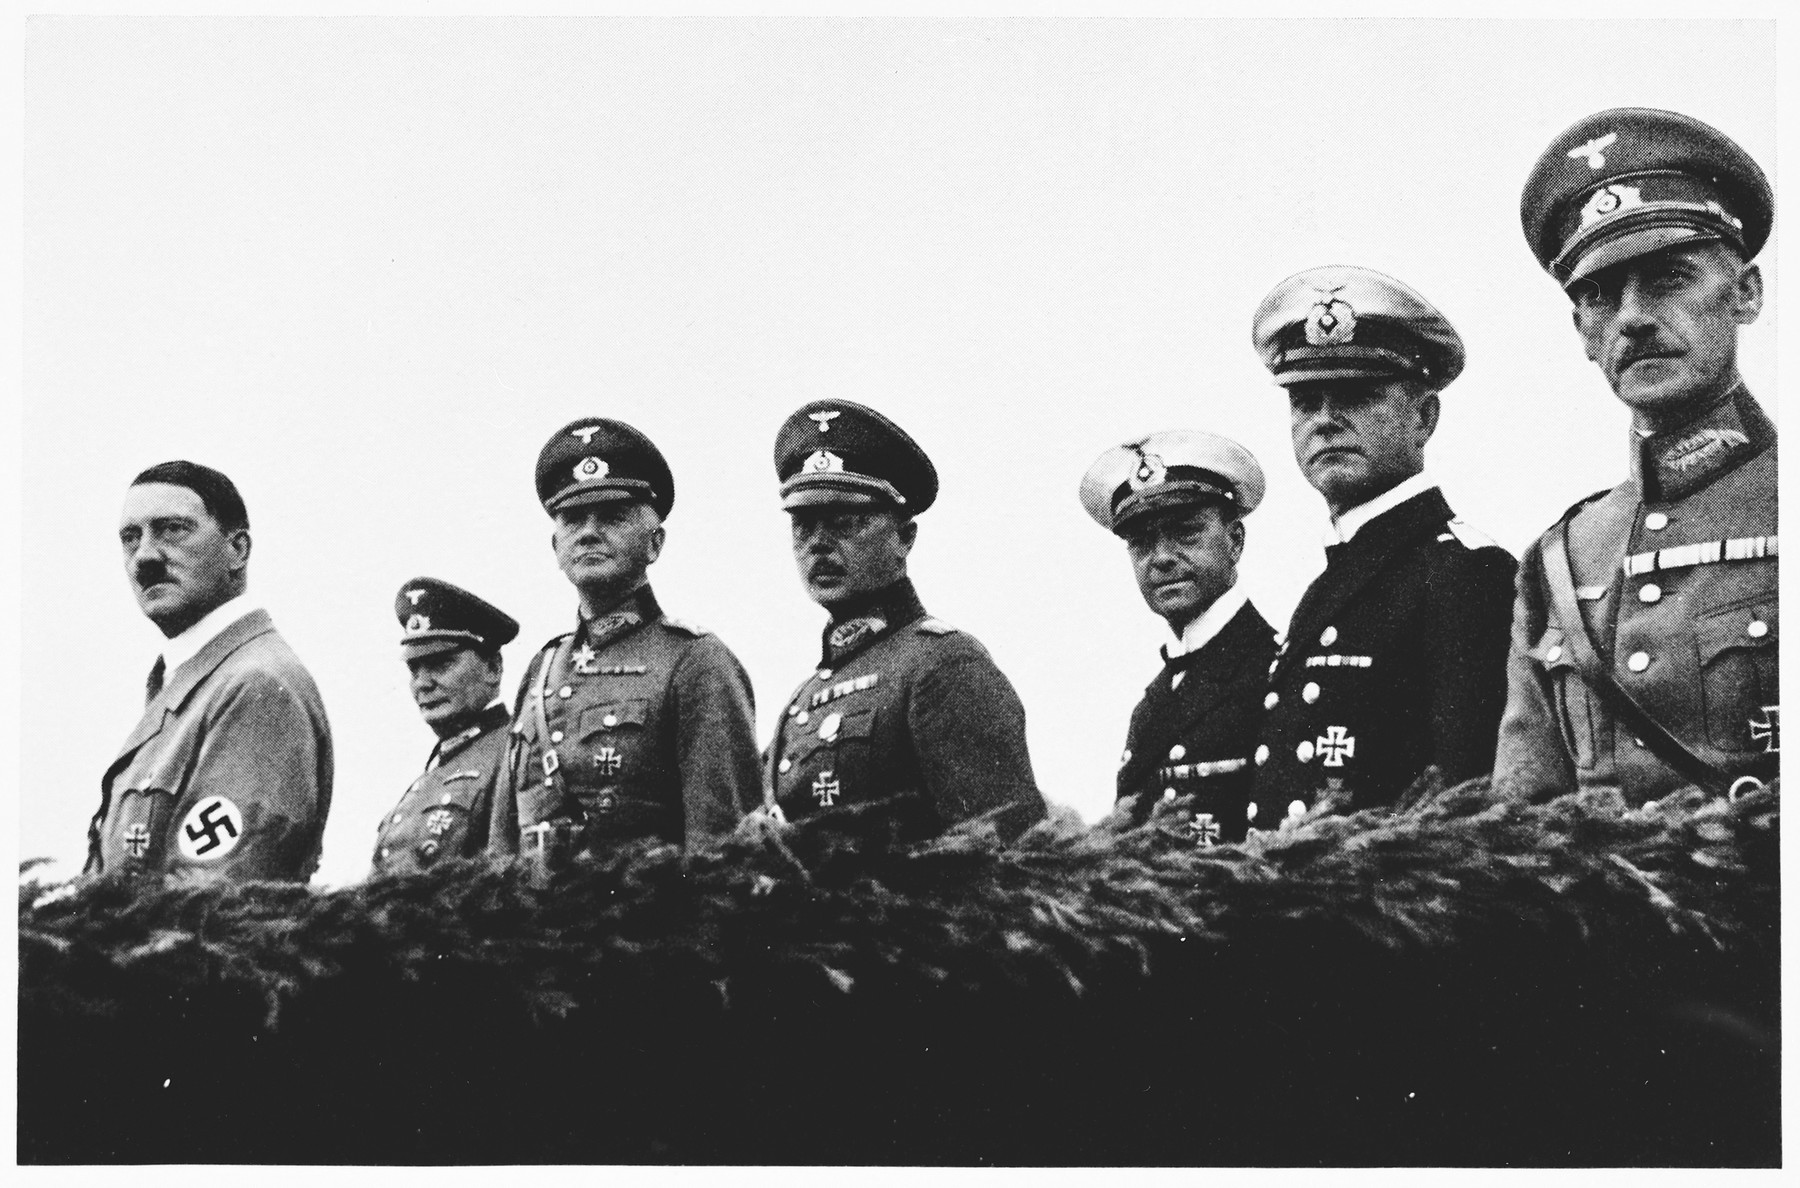 Hitler poses with members of the High Command during Wehrmacht Day celebrations.   Pictured from left to right are: Hitler, Hermann Goering, Werner von Blomberg, Werner von Fritsch, and Erich Raeder.